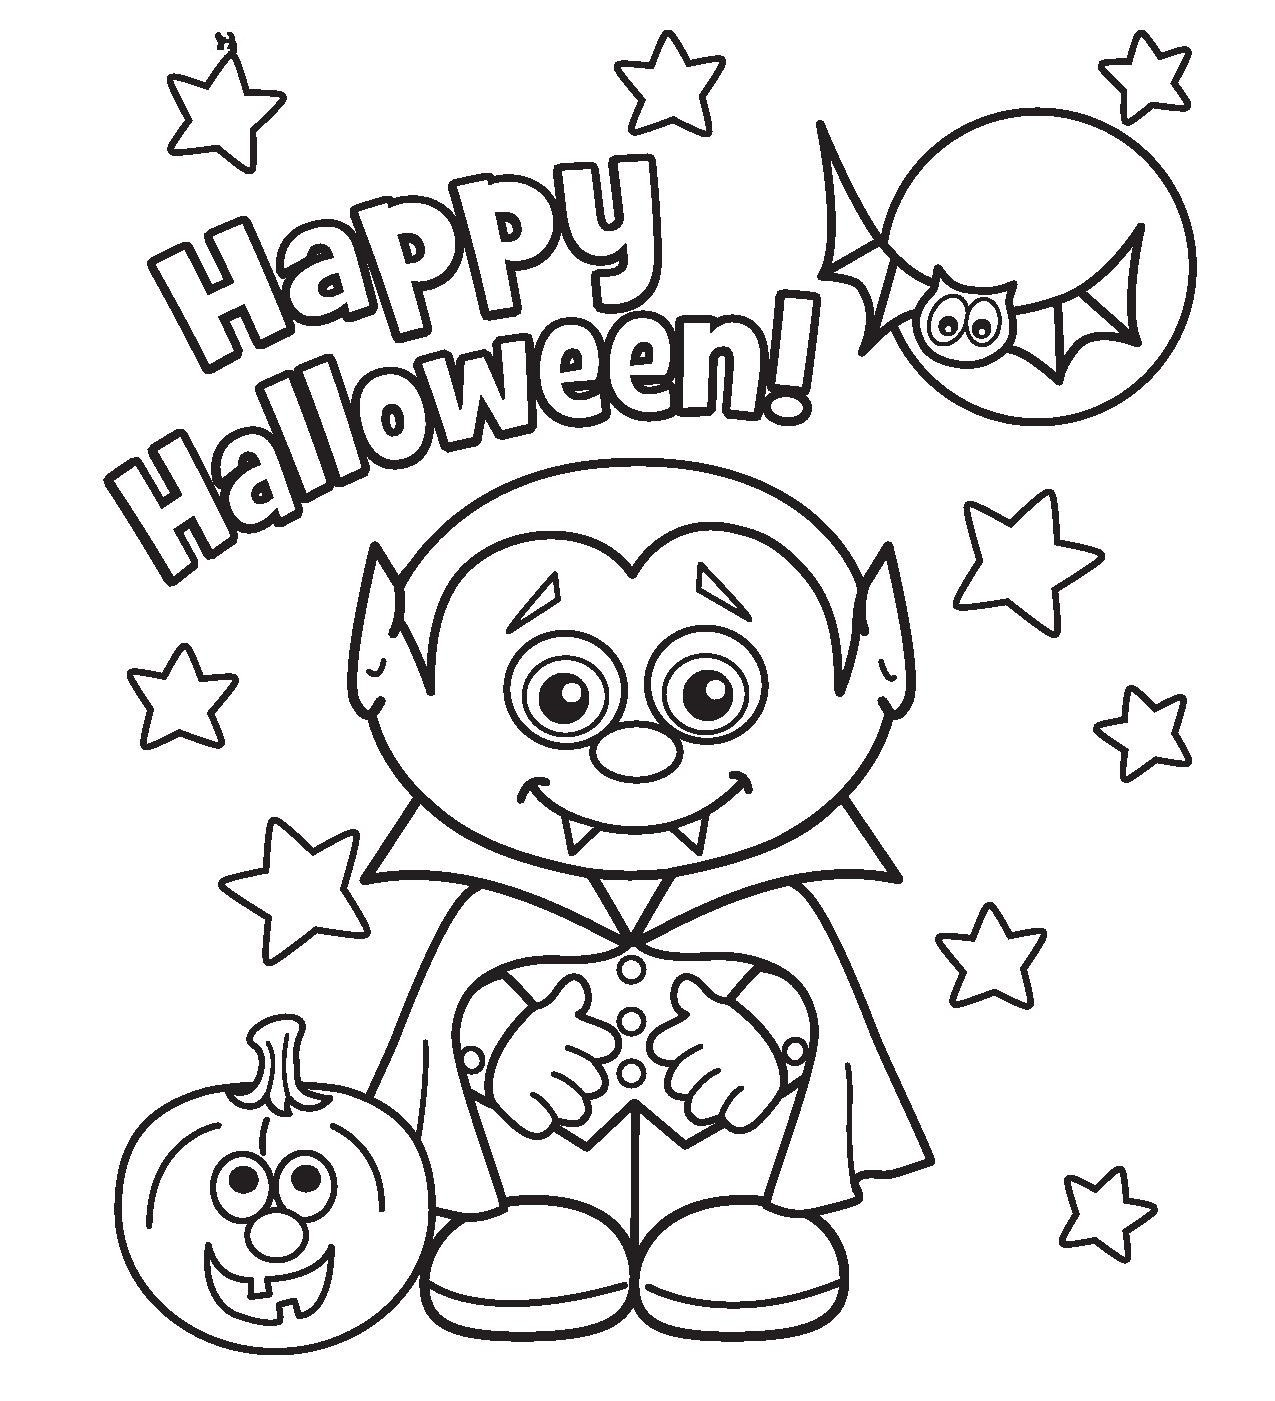 bordures de pages halloween coloring - photo#43